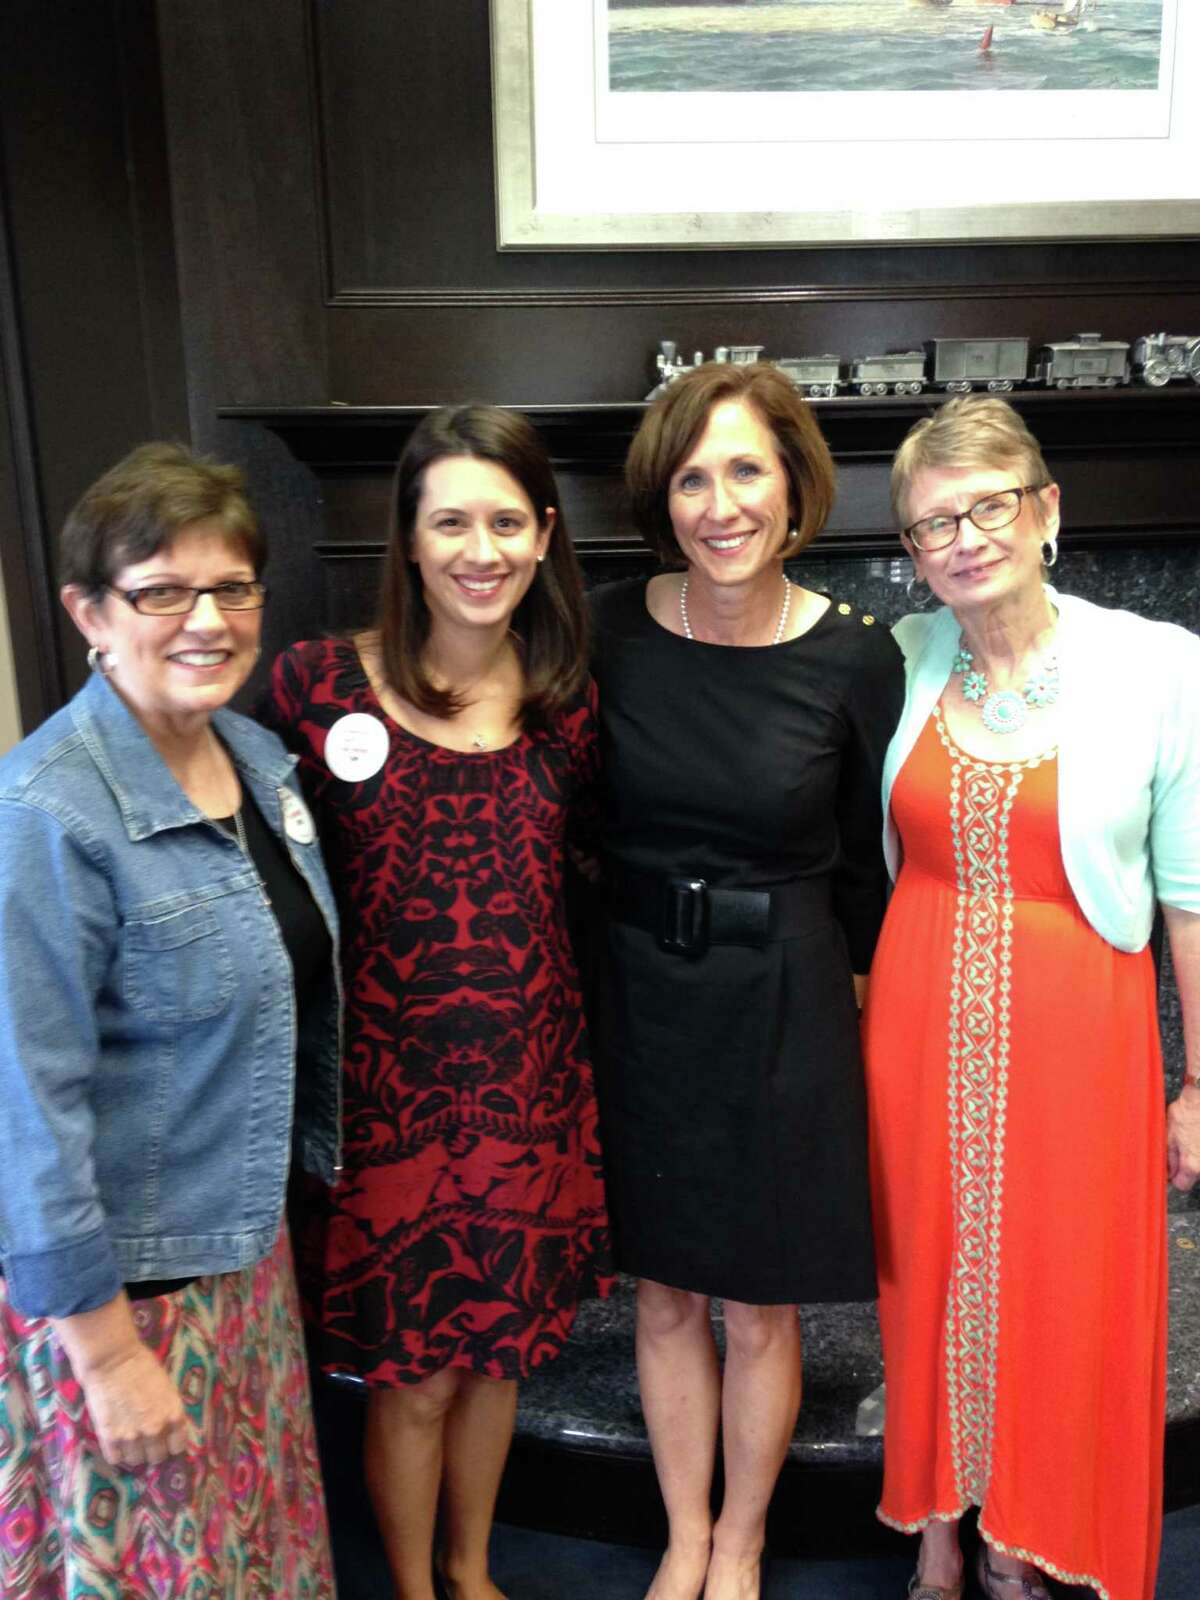 Representatives of Maddie's Mission visited local state legislators to promote public education about cytomegalovirus. From left are:Ann Blalock, Farah Armstrong, District state Sen. Lois Kolkhorst, R-Brenham, and Becky Ghazi. Not pictured is Dr. Gail Demmler Harrison, CMV Expert at Baylor College of Medicine and Texas Children's Hospital. Representatives of Maddie's Mission visited local state legislators to promote public education about cytomegalovirus. From left are:Ann Blalock, Farah Armstrong, District state Sen. Lois Kolkhorst, R-Brenham, and Becky Ghazi. Not pictured is Dr. Gail Demmler Harrison, CMV Expert at Baylor College of Medicine and Texas Children's Hospital.